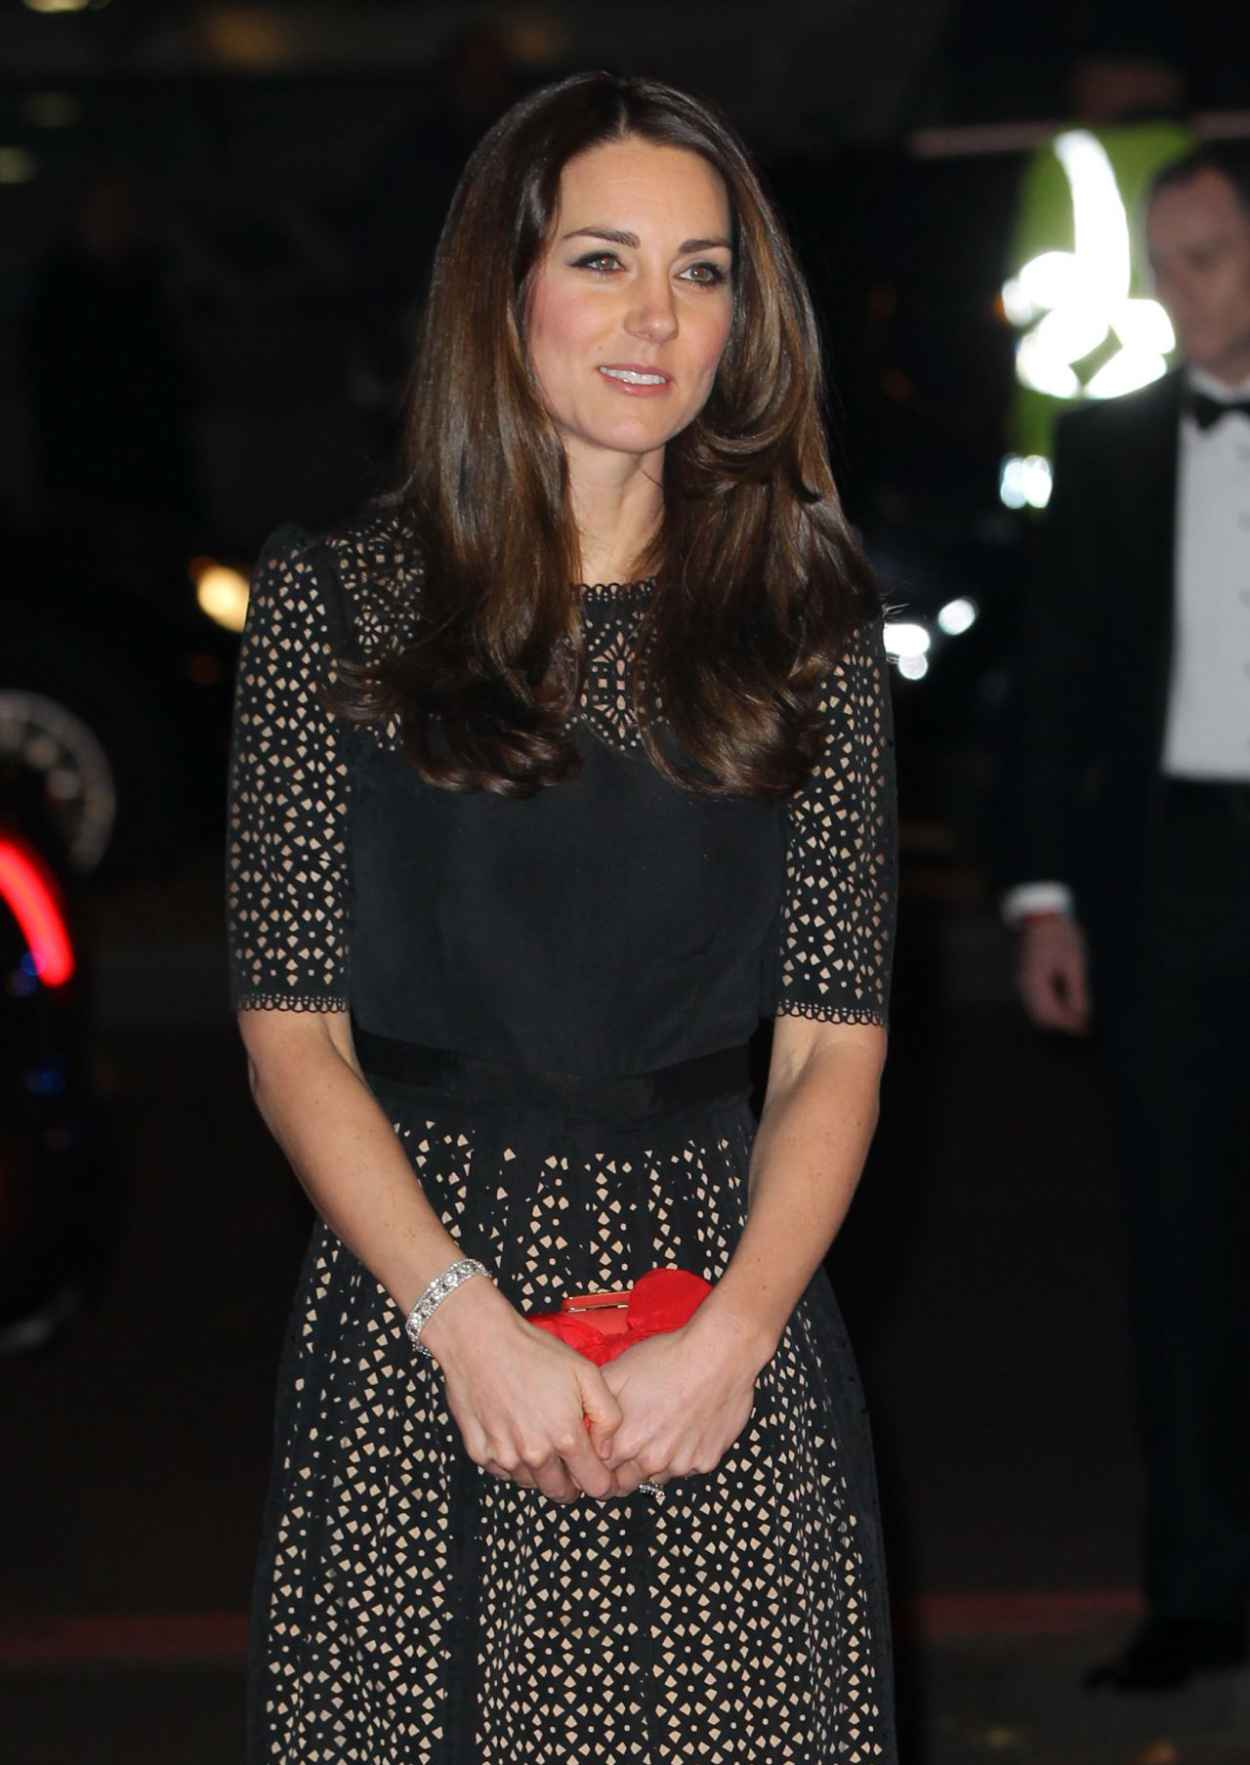 Kate Middleton Attends Annual SportsAid Dinner at Victoria Embankment Gardens in London - November 2015-1